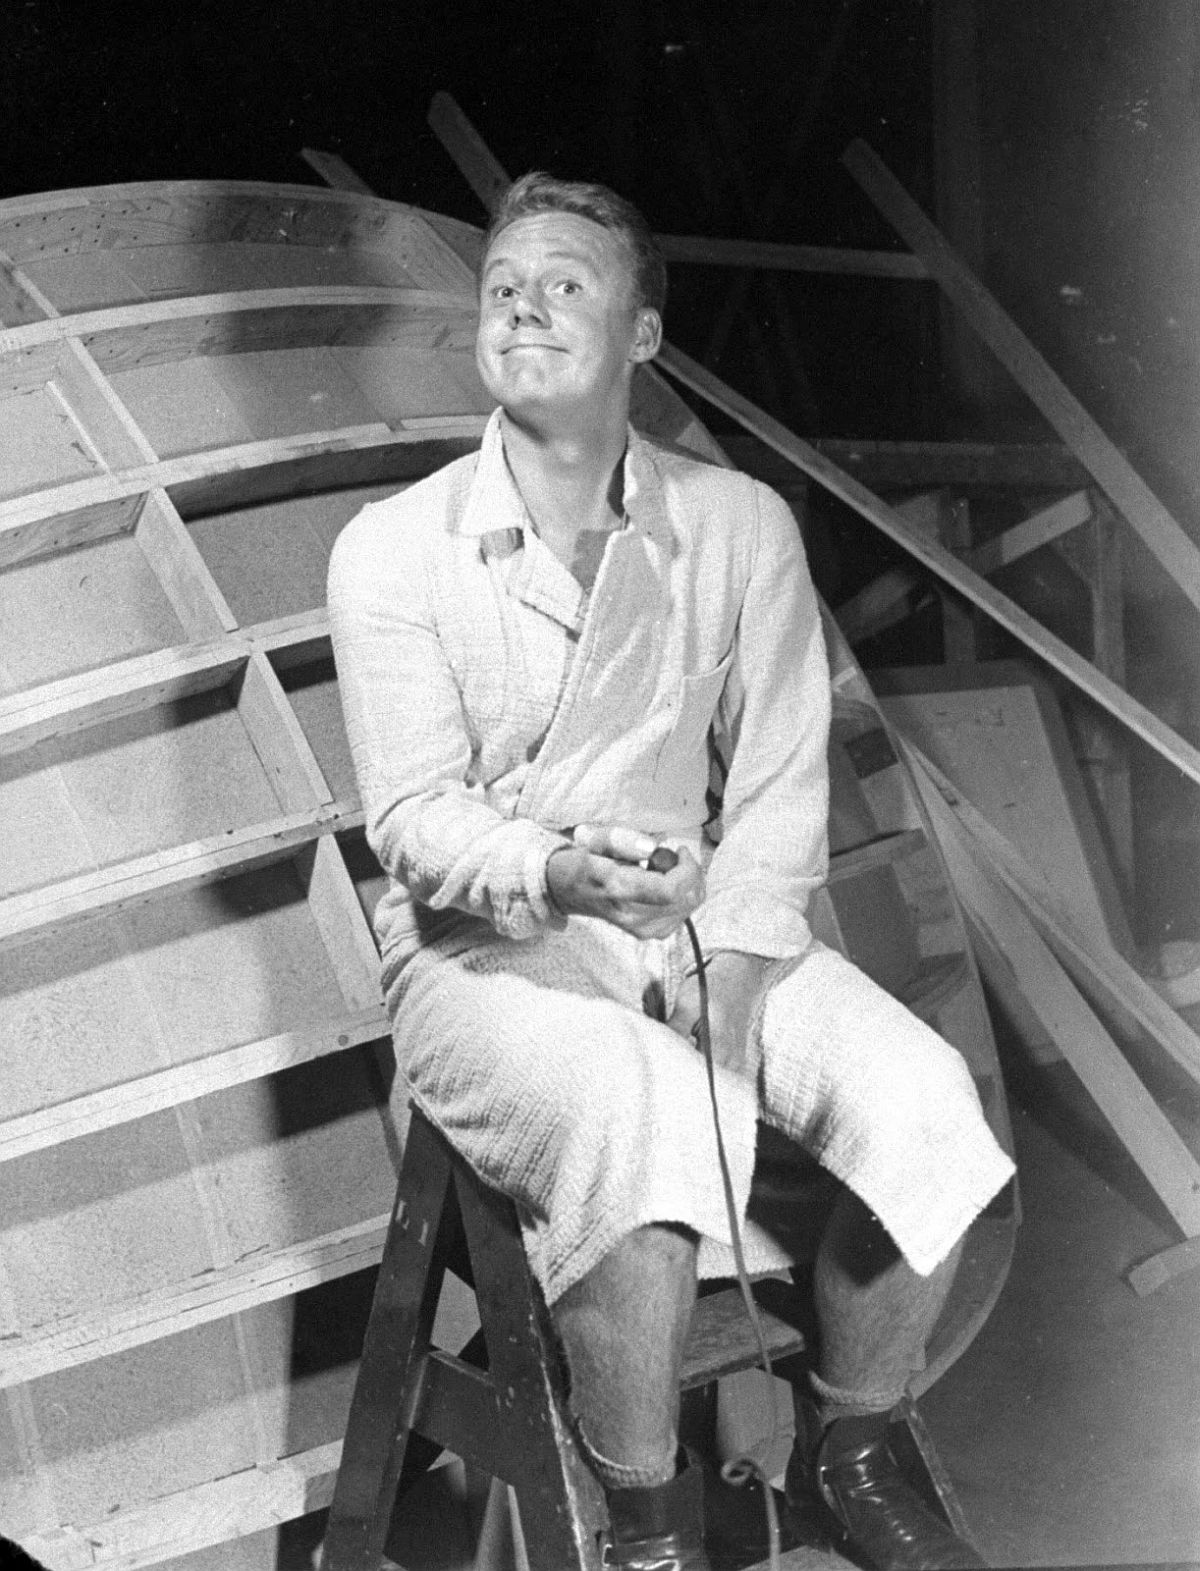 Actor Van Johnson